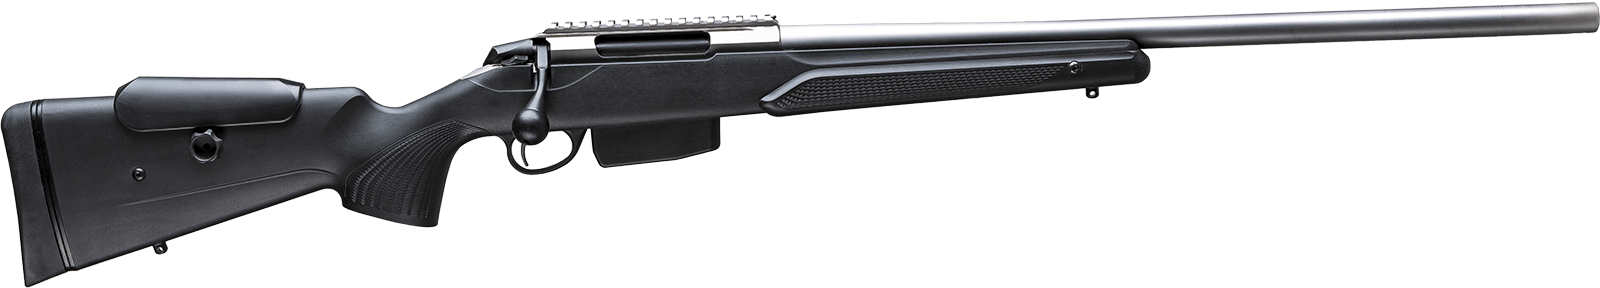 https://nepo.sk/tmp/import/products//tikka_t3x_super_varmint.png | Nepo